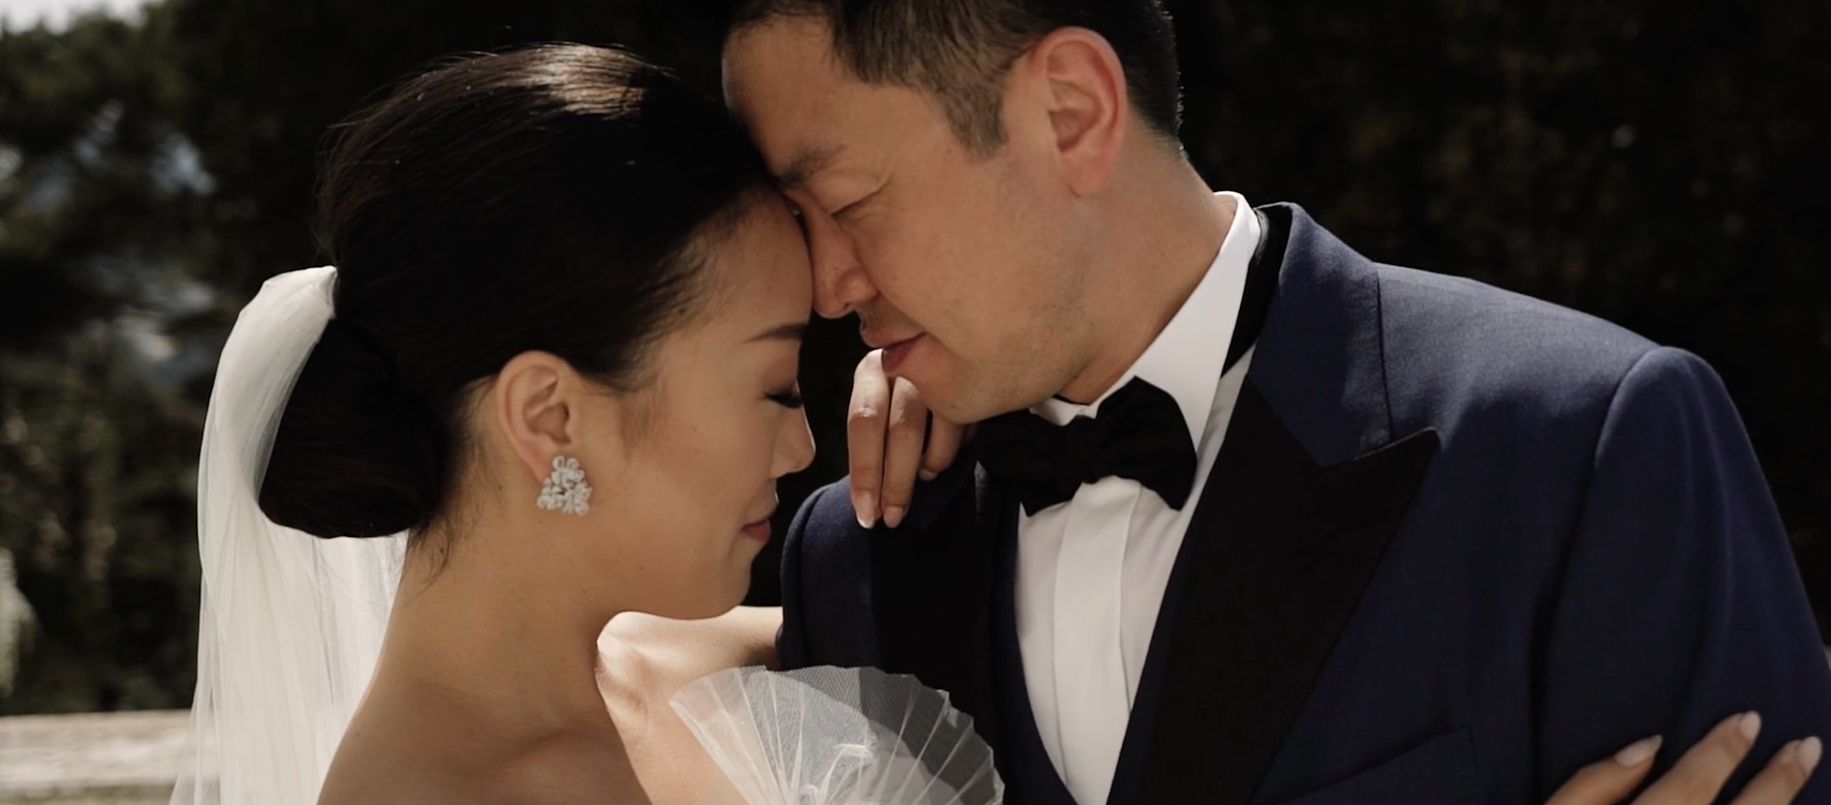 The Official Video From Feiping Chang & Lincoln Li's Fairytale Wedding